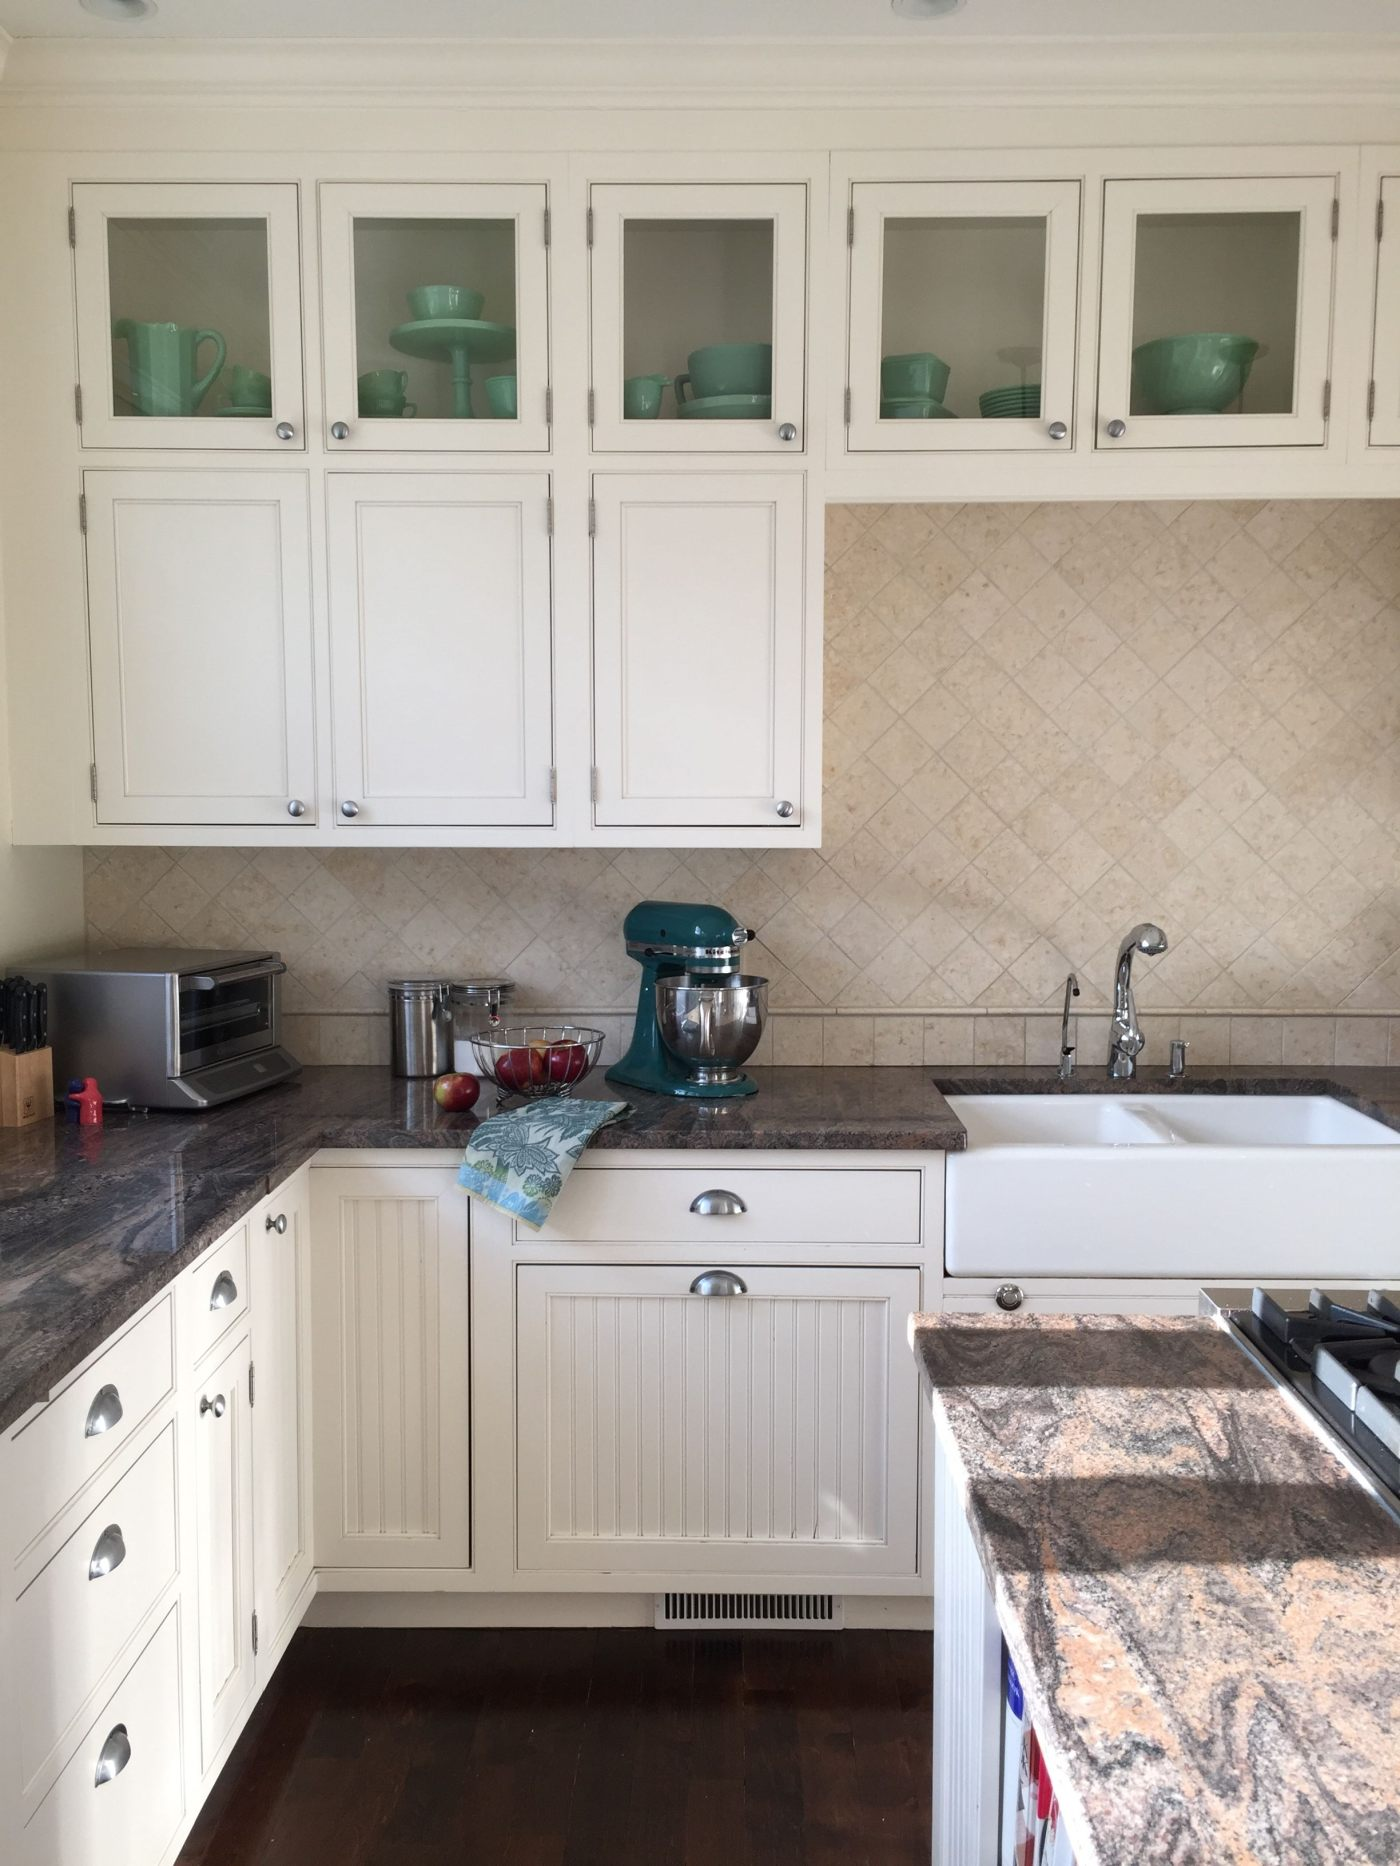 Project 1896: Kitchen Plans! (BEFORE) | Kelly Rogers Interiors | Interiors for Families